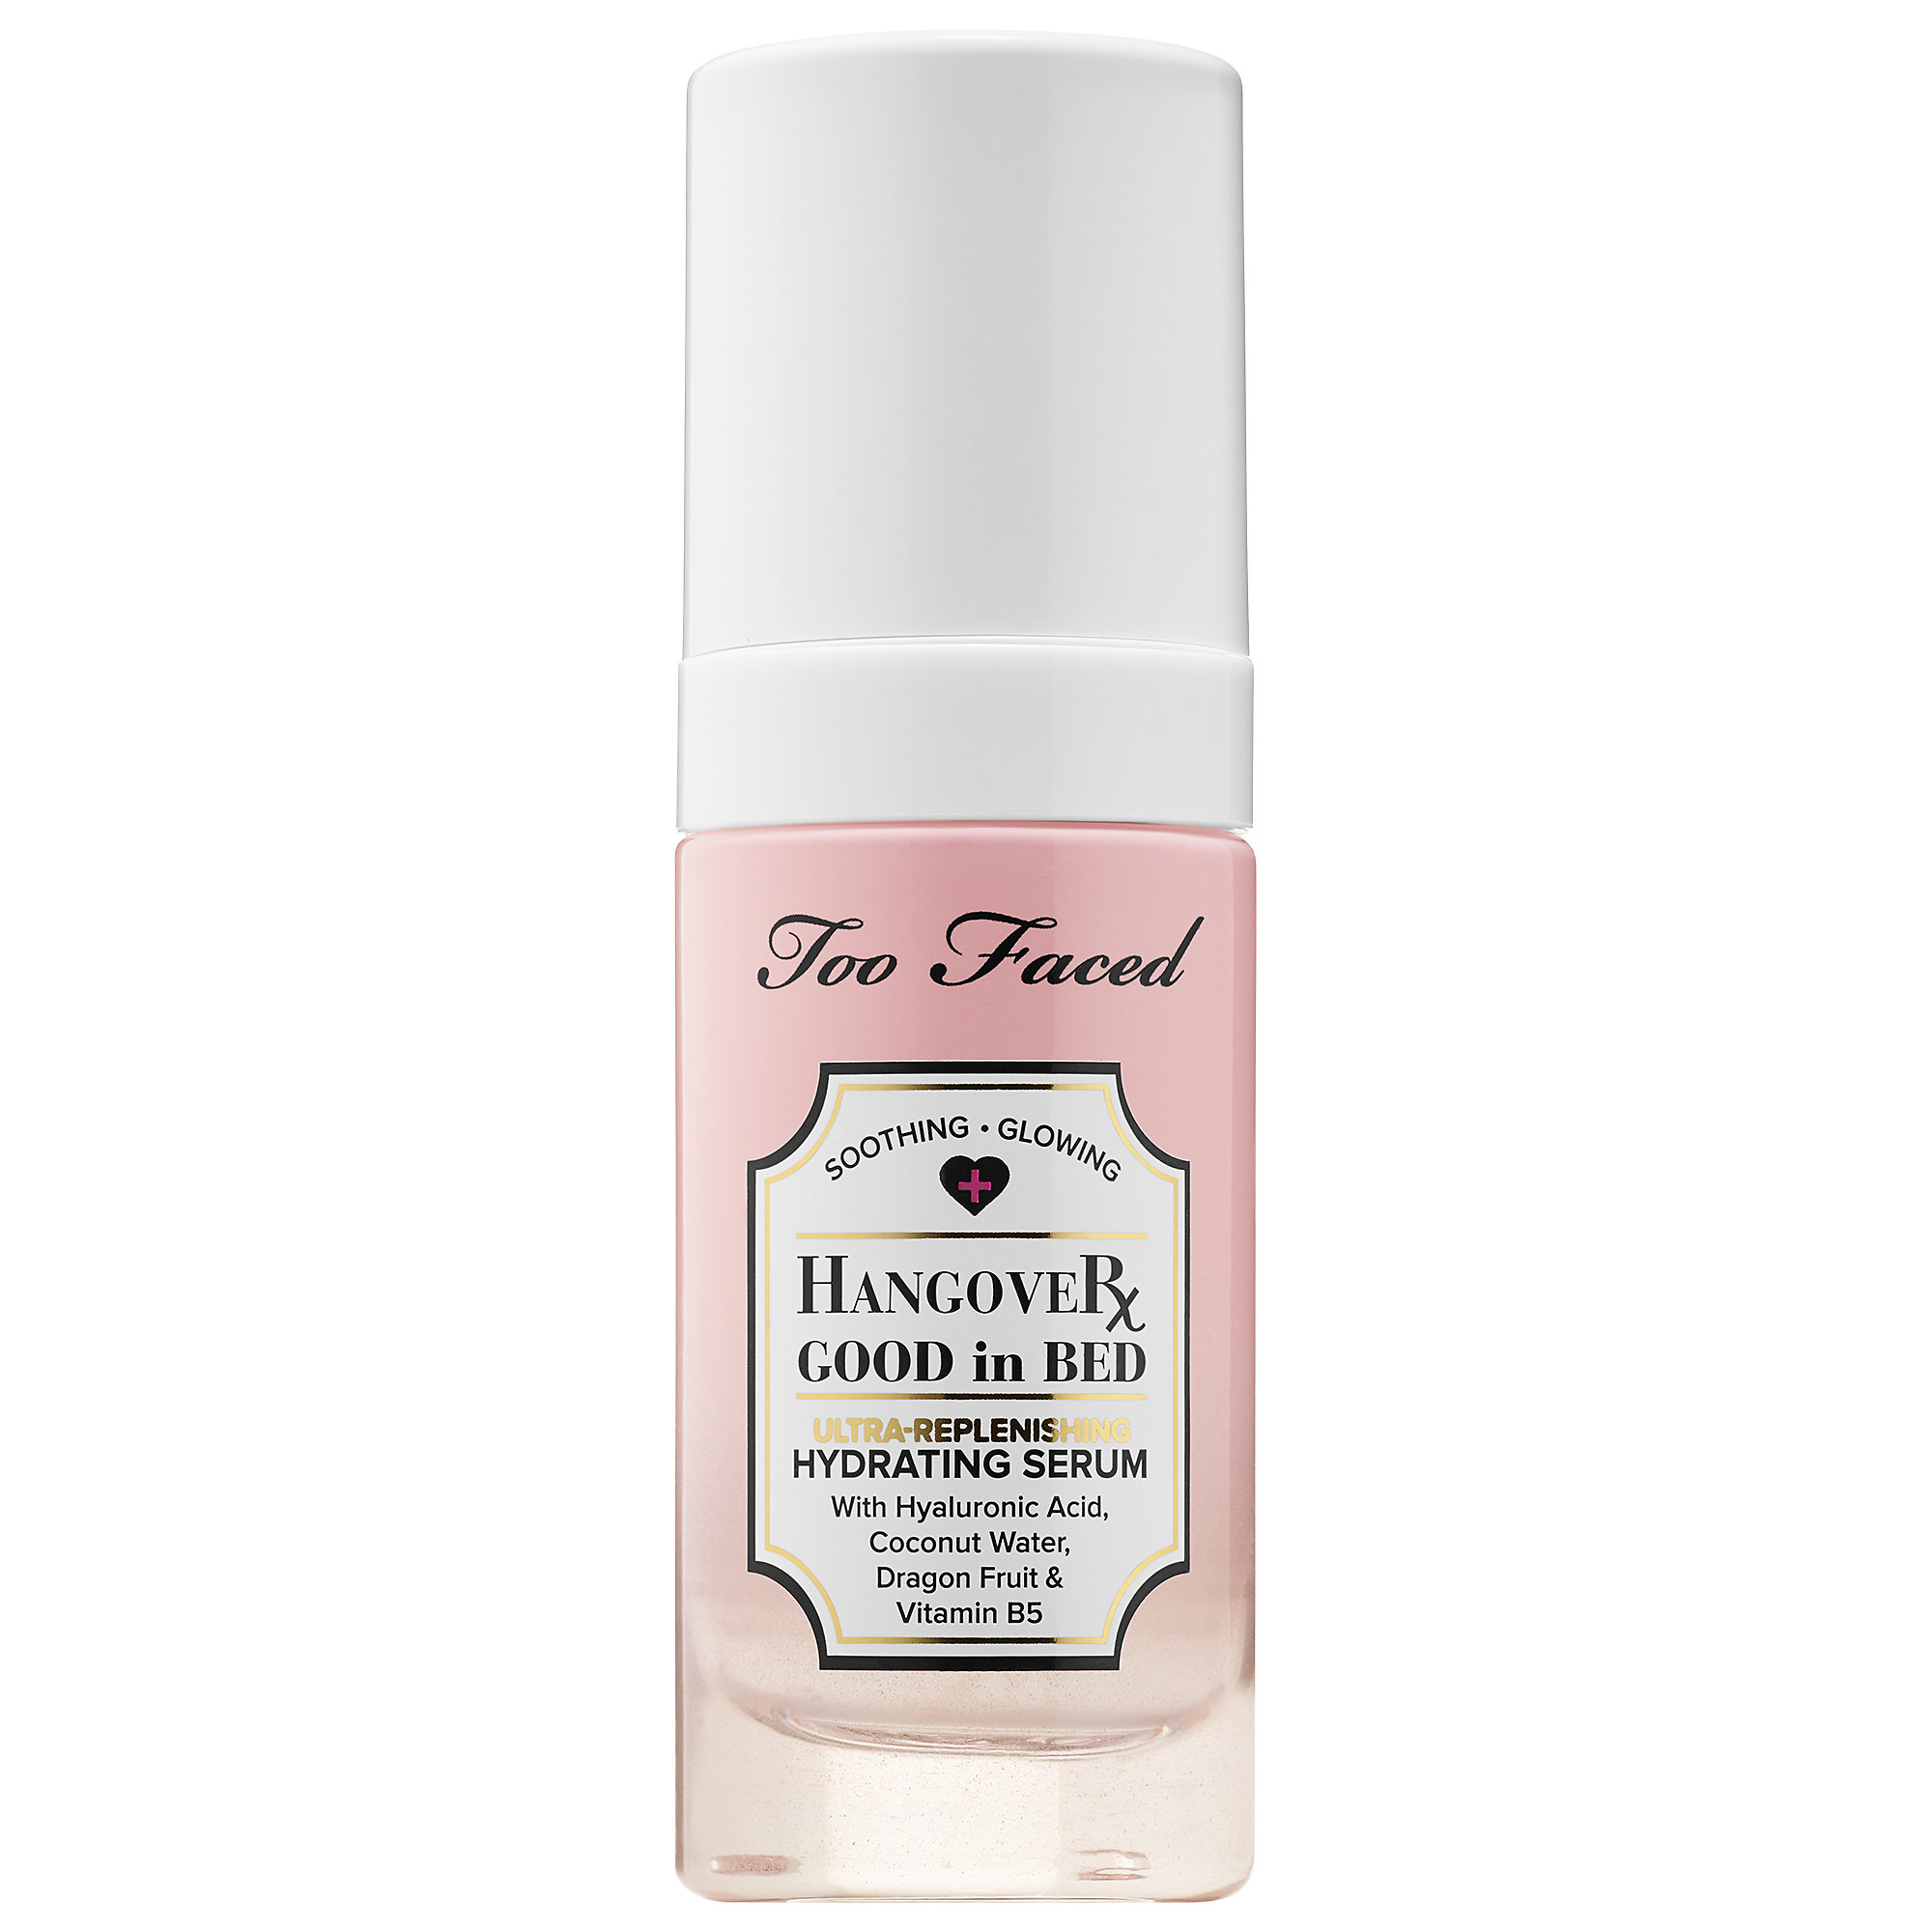 Too Faced - Hangover Good In Bed Ultra-Replenishing Hydrating Serum